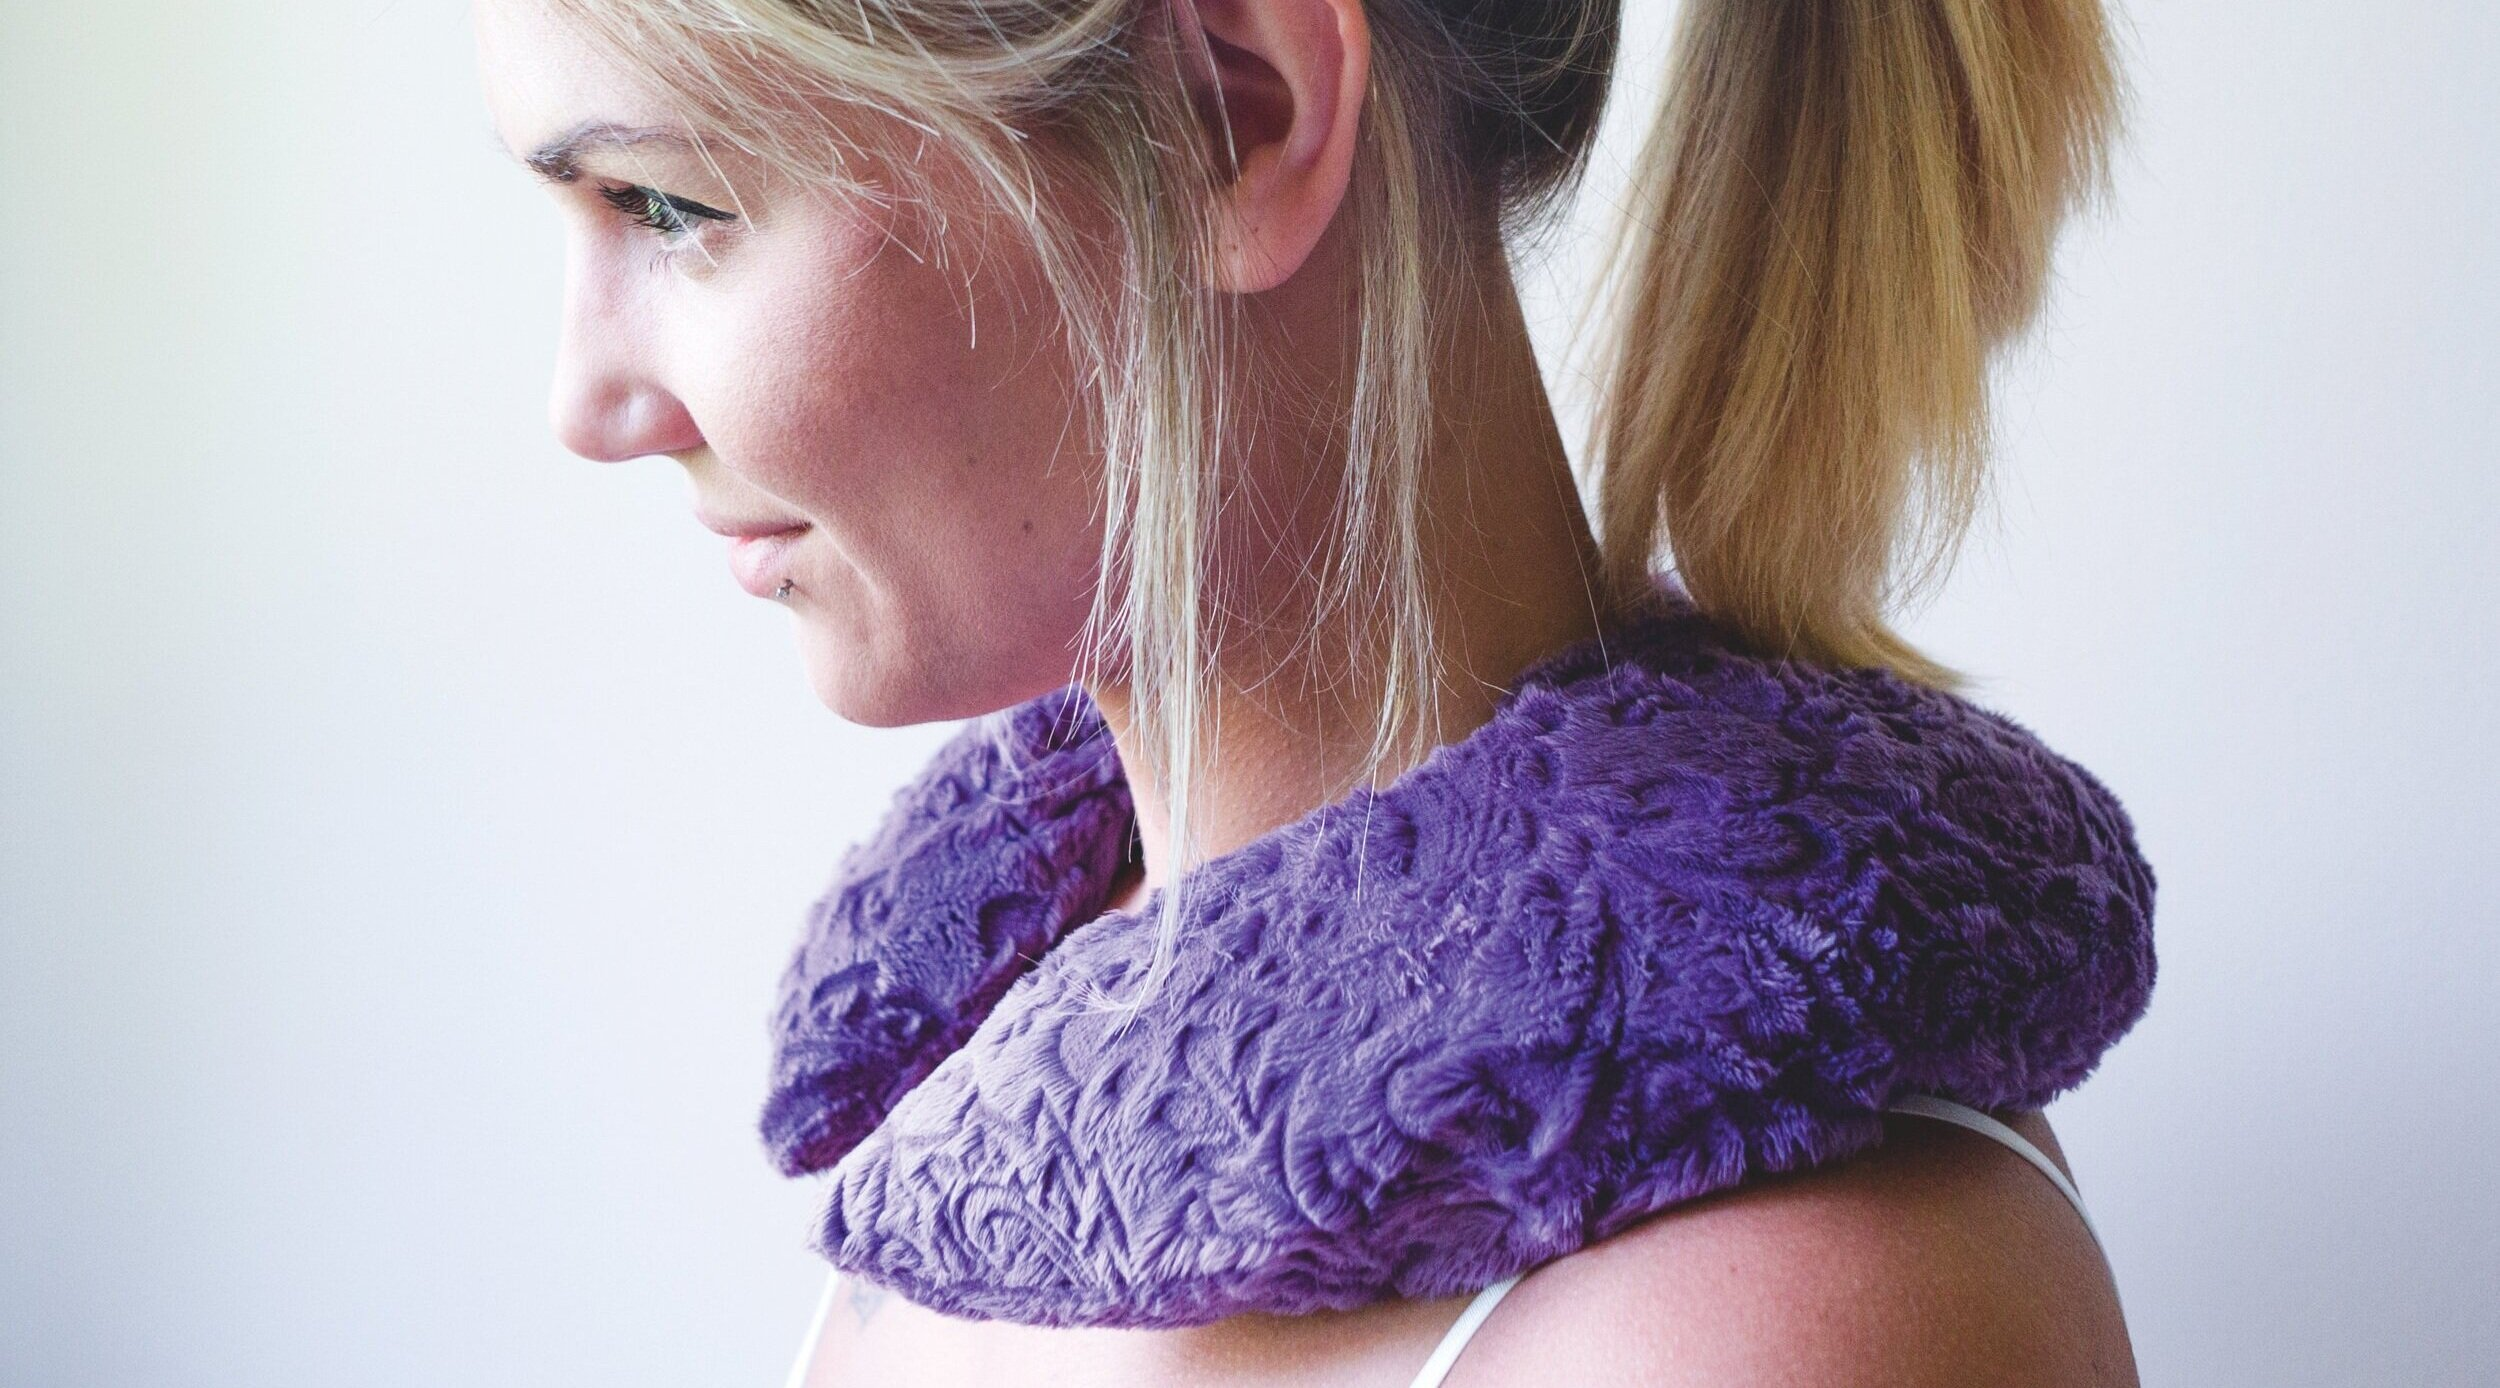 Relaxing Neck Cozy - Treat your body to luxurious hot/cold therapy with our therapeutic, relaxing Spa Pillows.